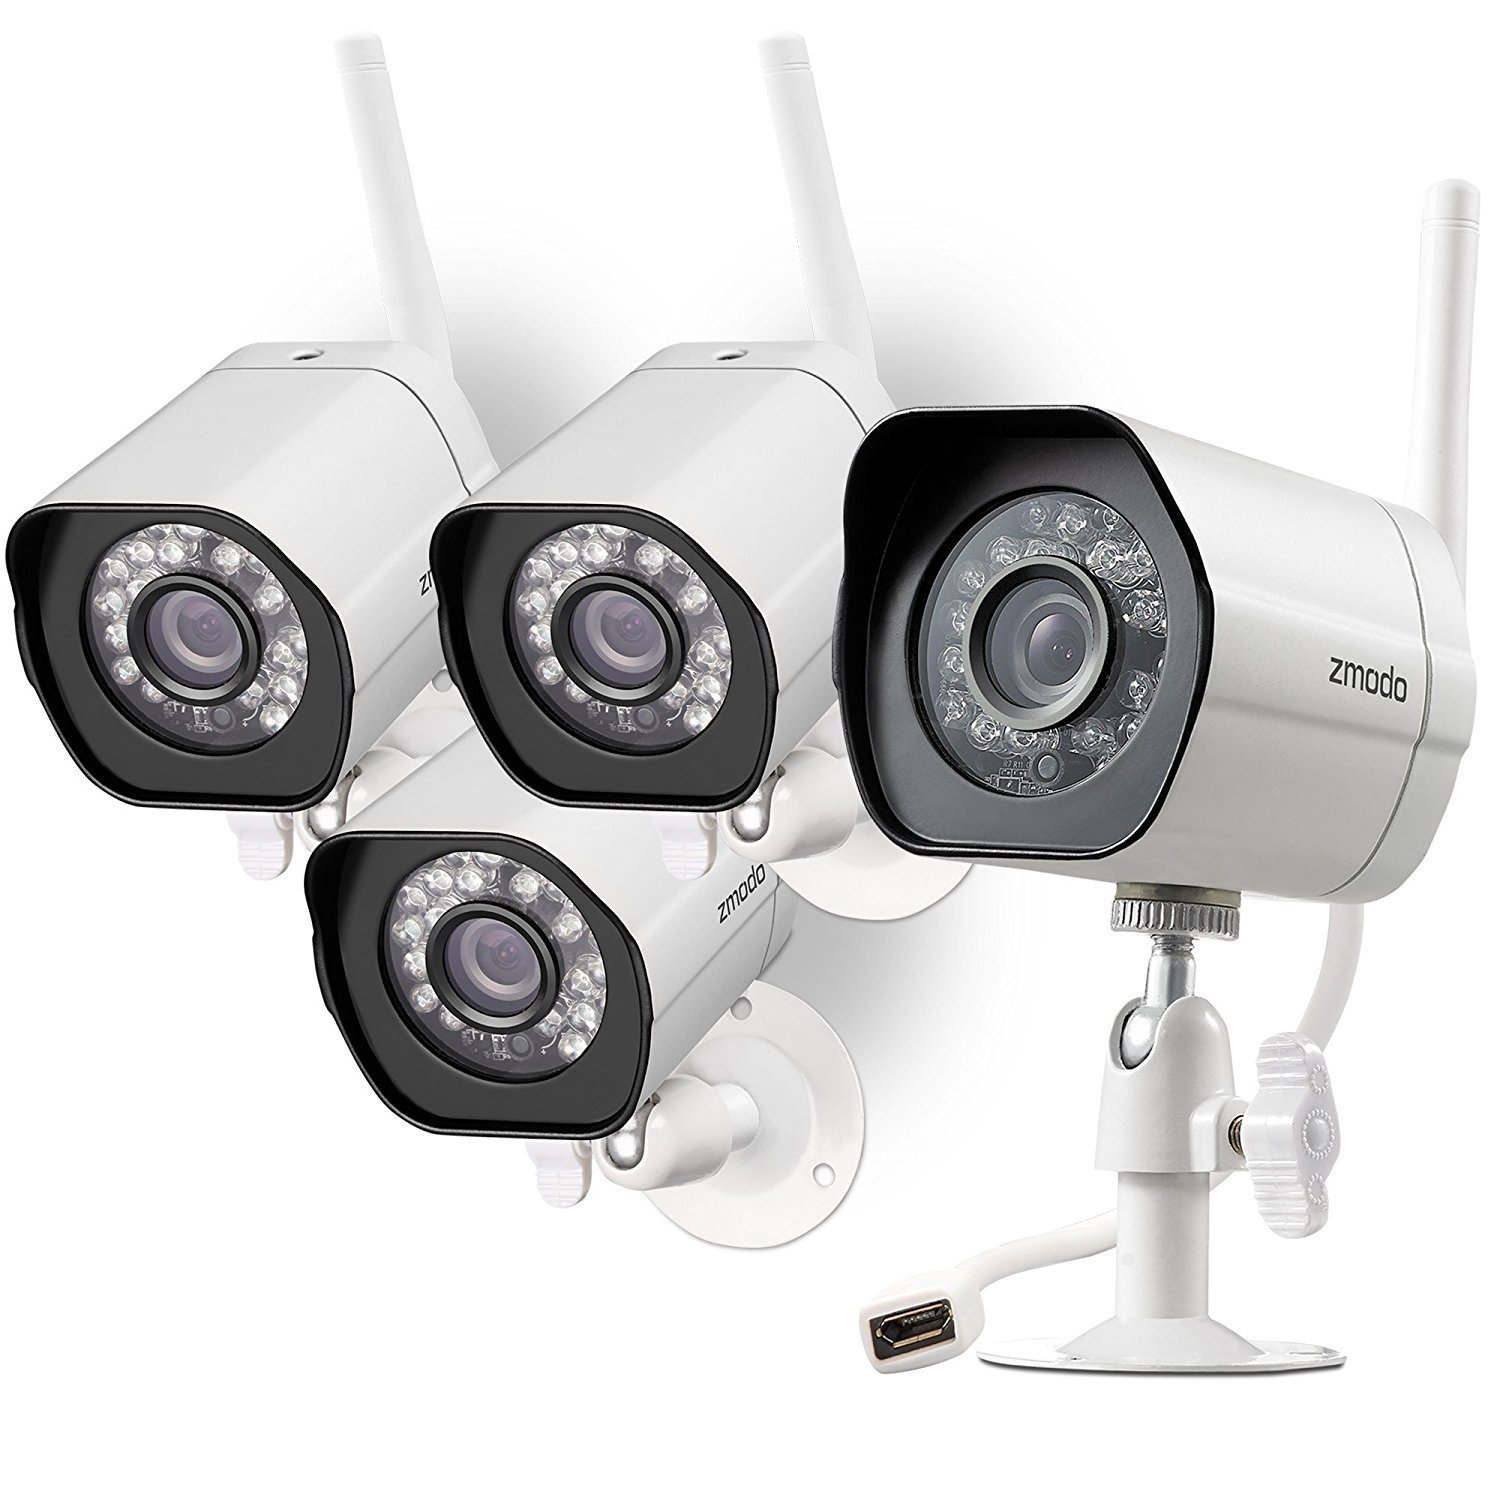 Zmodo Smart Wireless Security Camera System- 4 Unites Pack- HD Indoor/Outdoor WiFi IP Cameras with Night Vision Easy Remote Access